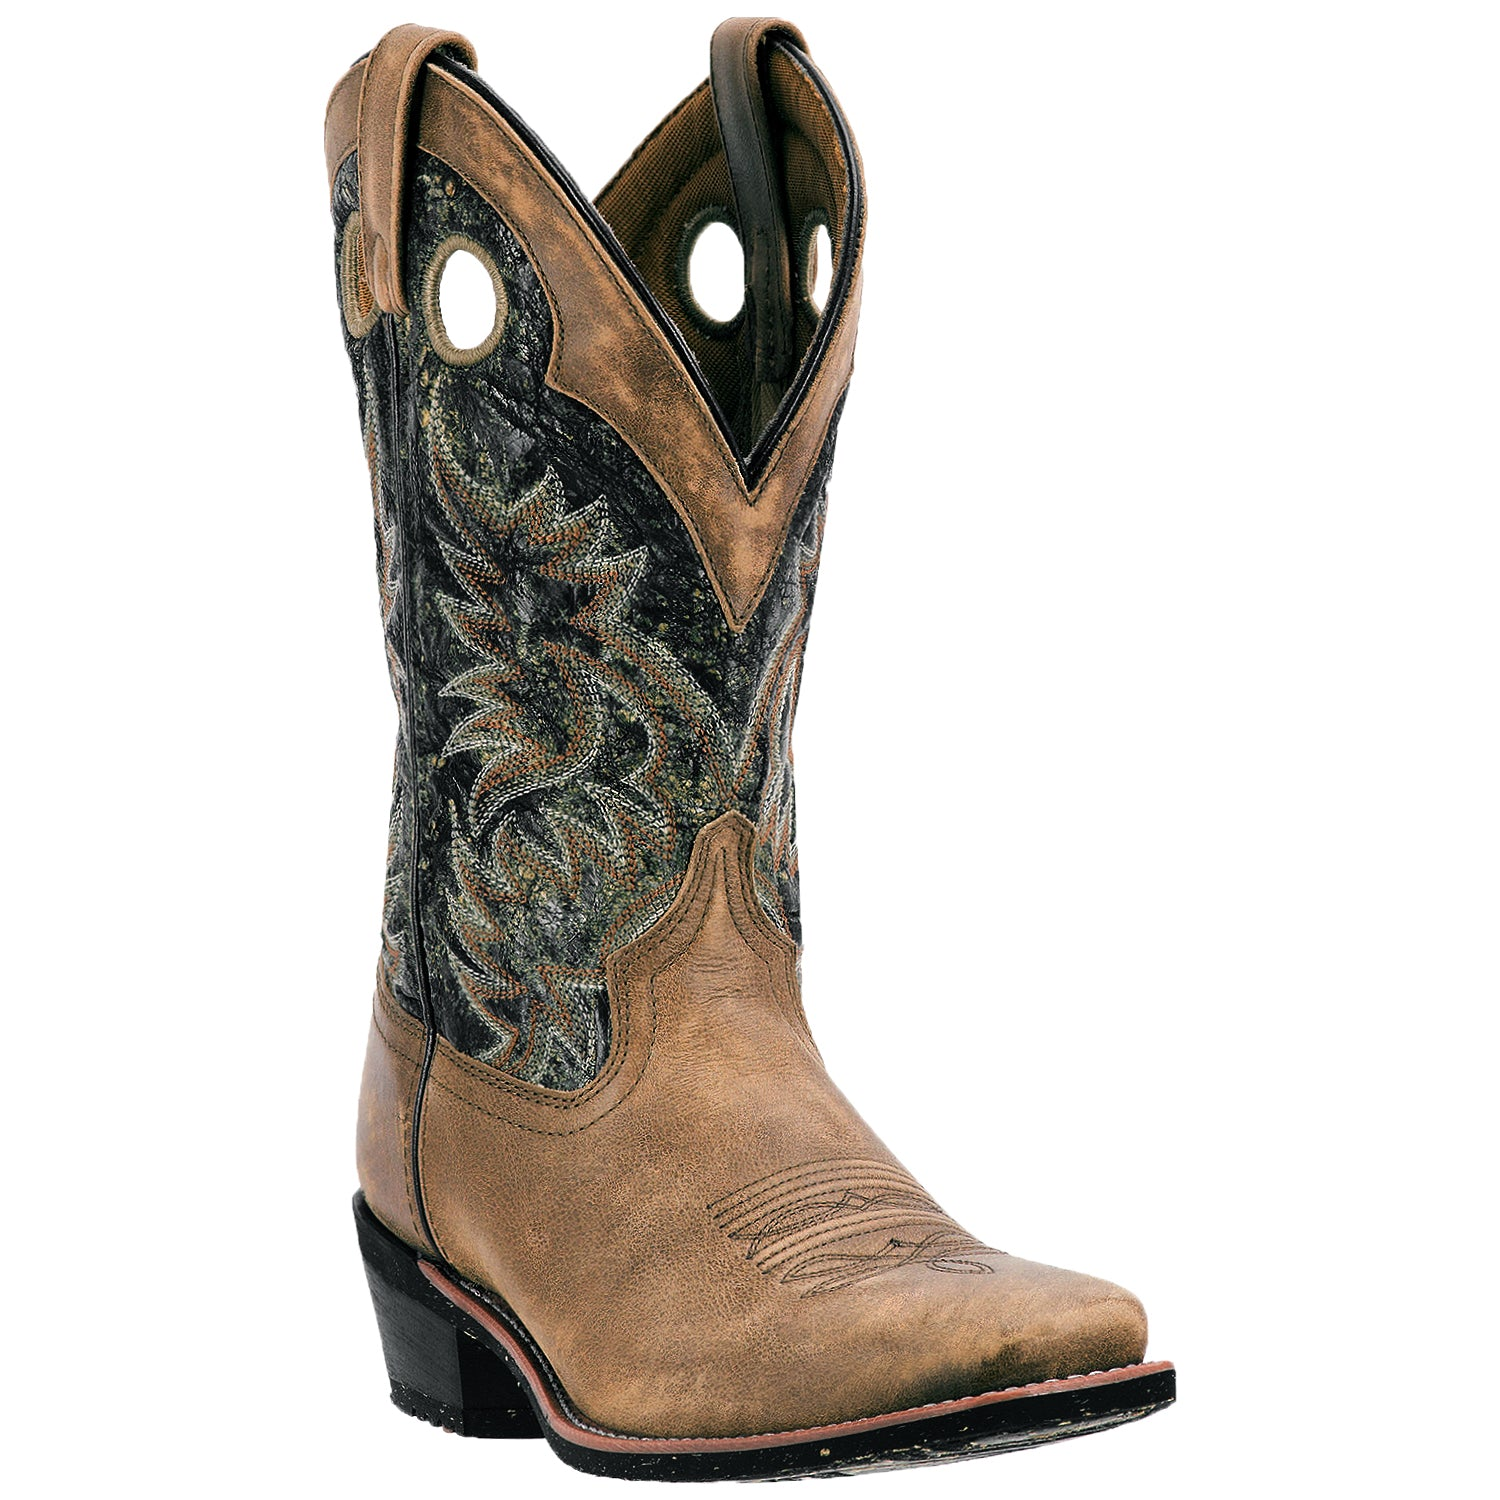 STILLWATER LEATHER BOOT 4254292869162